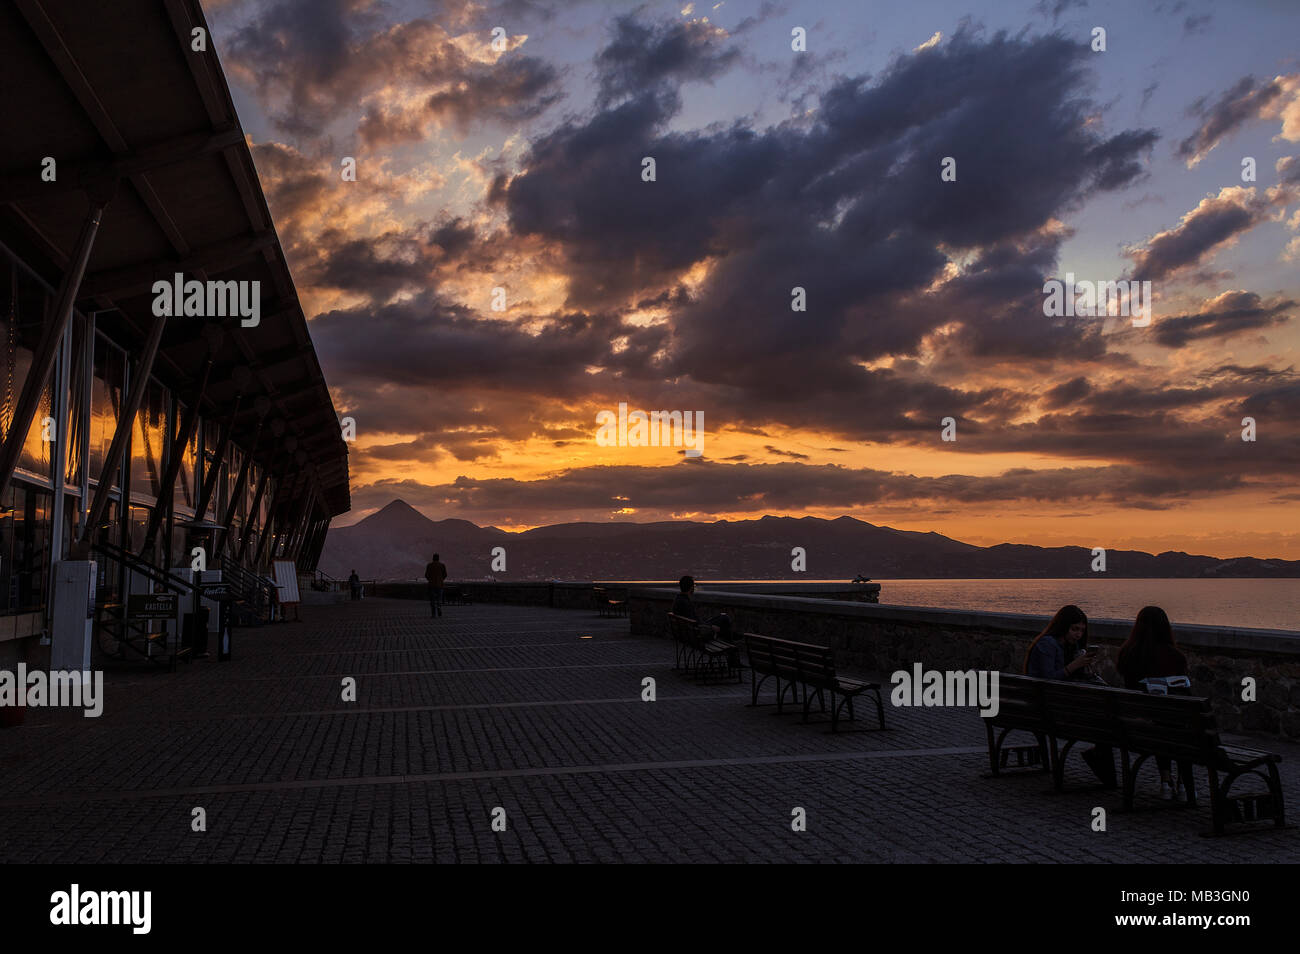 A great fiery sunset at Heraklion port - Stock Image